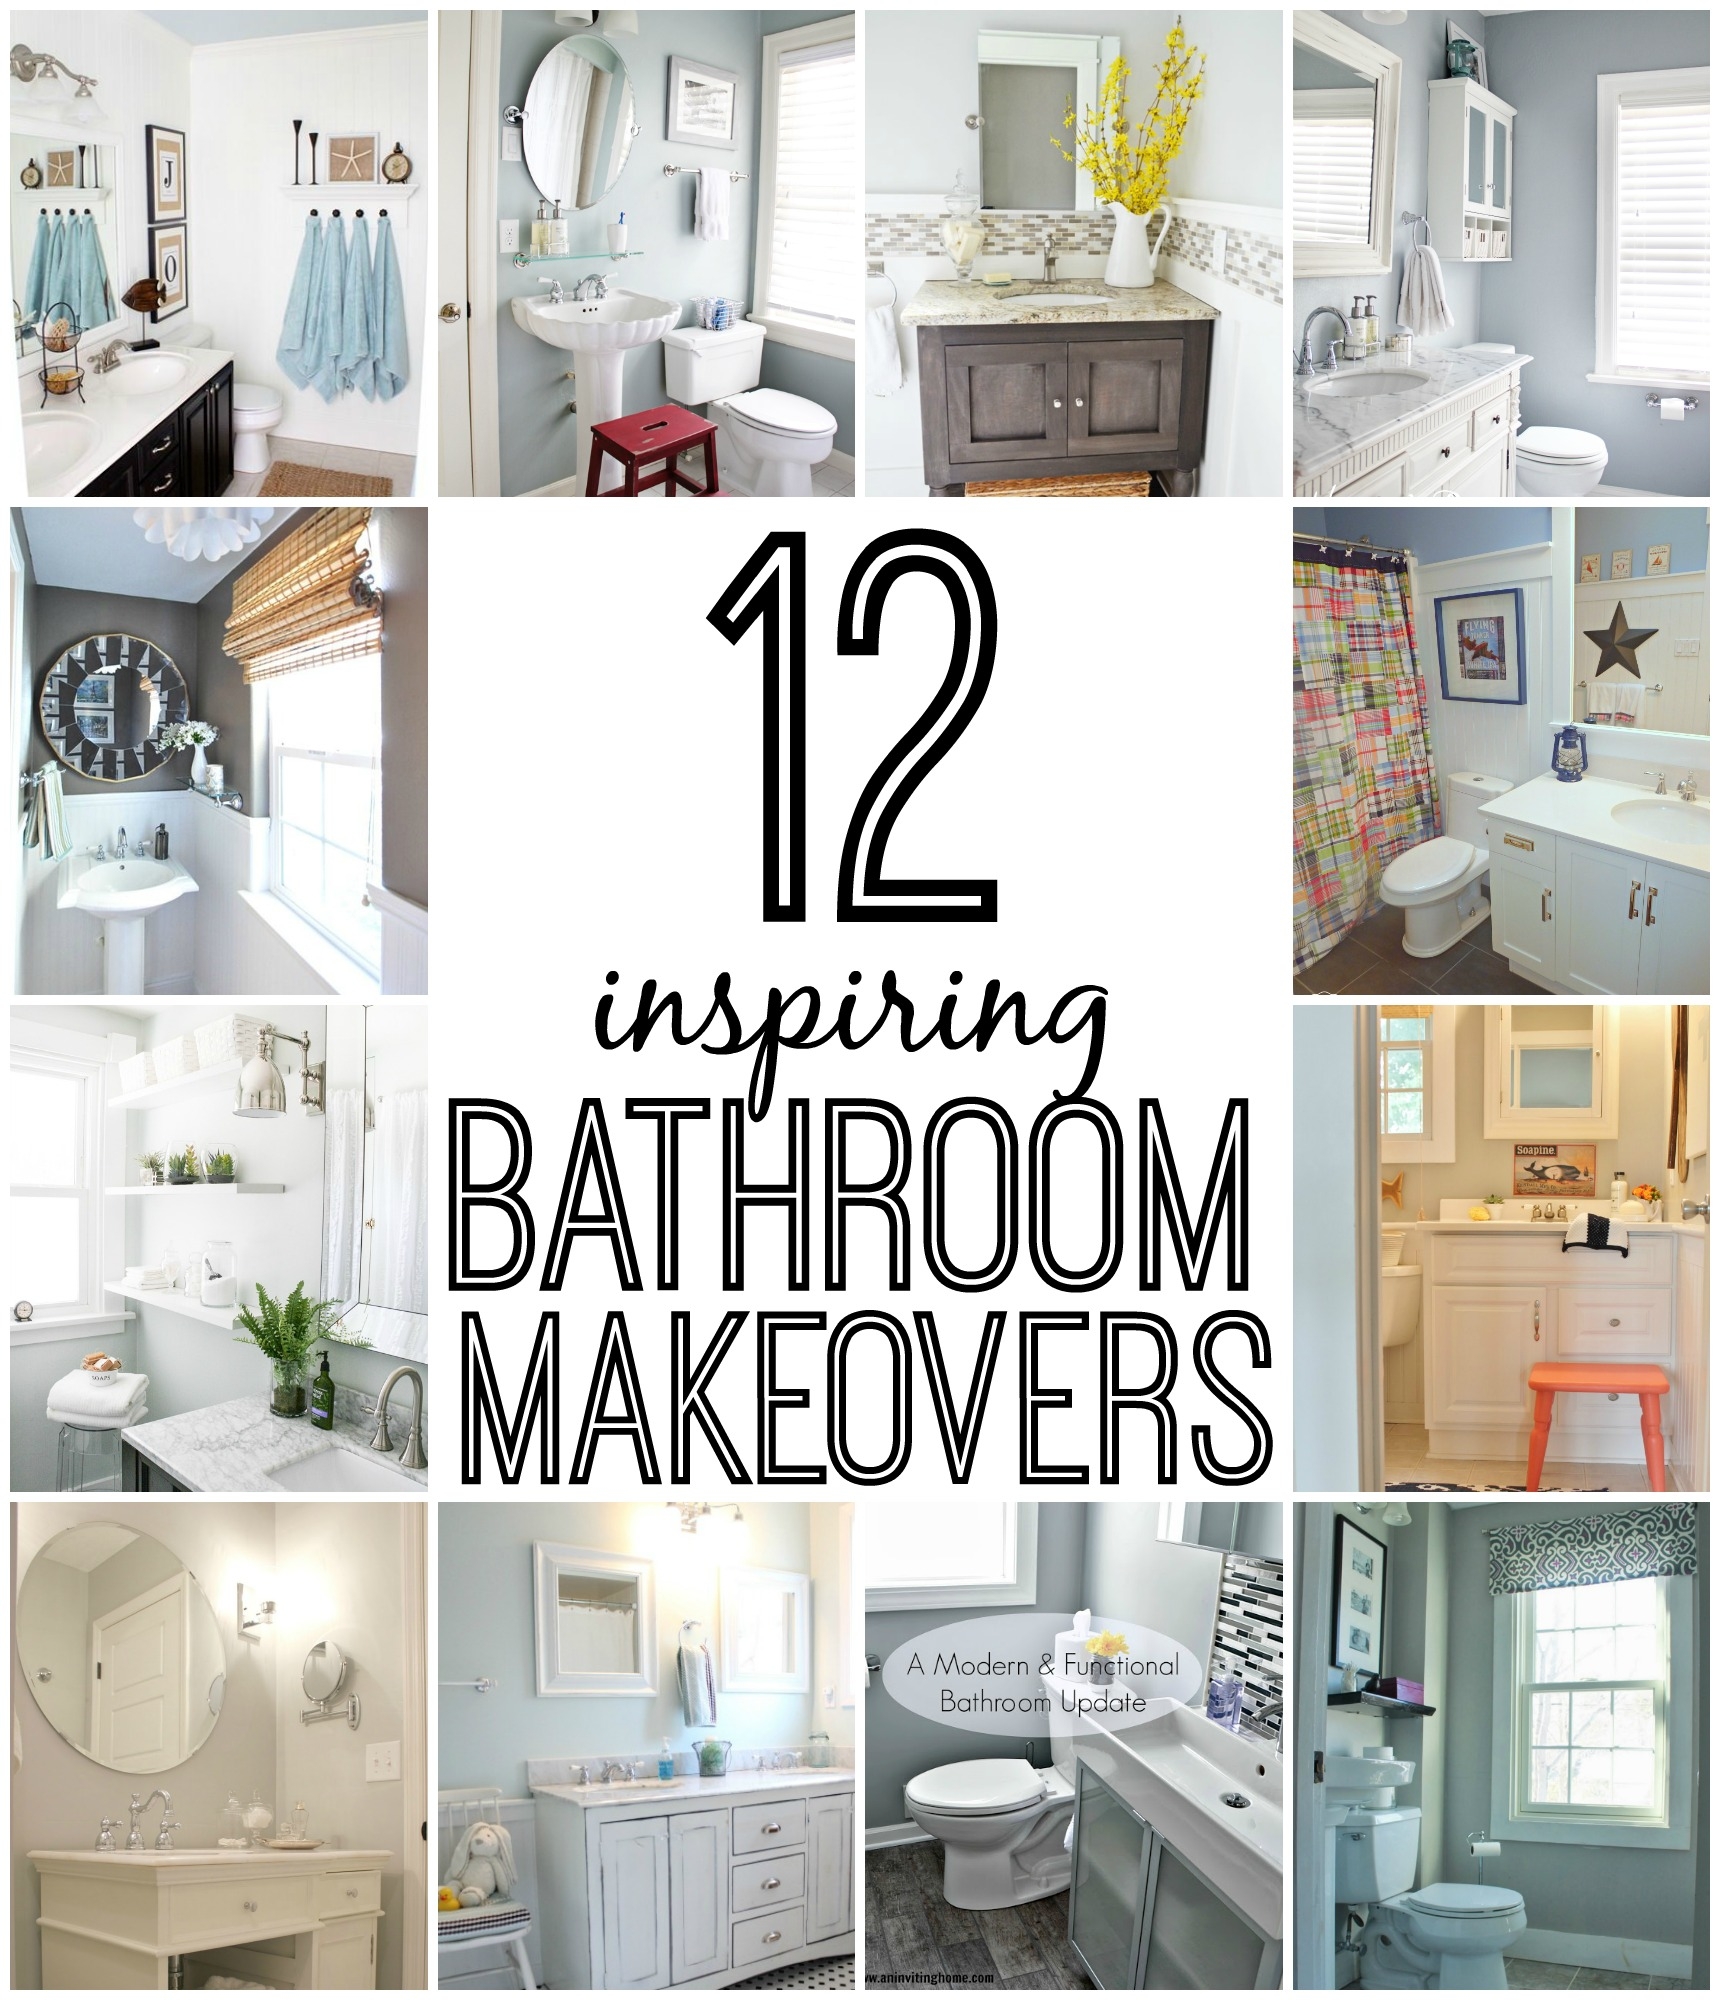 Inspiring bathroom makeovers for small bathrooms